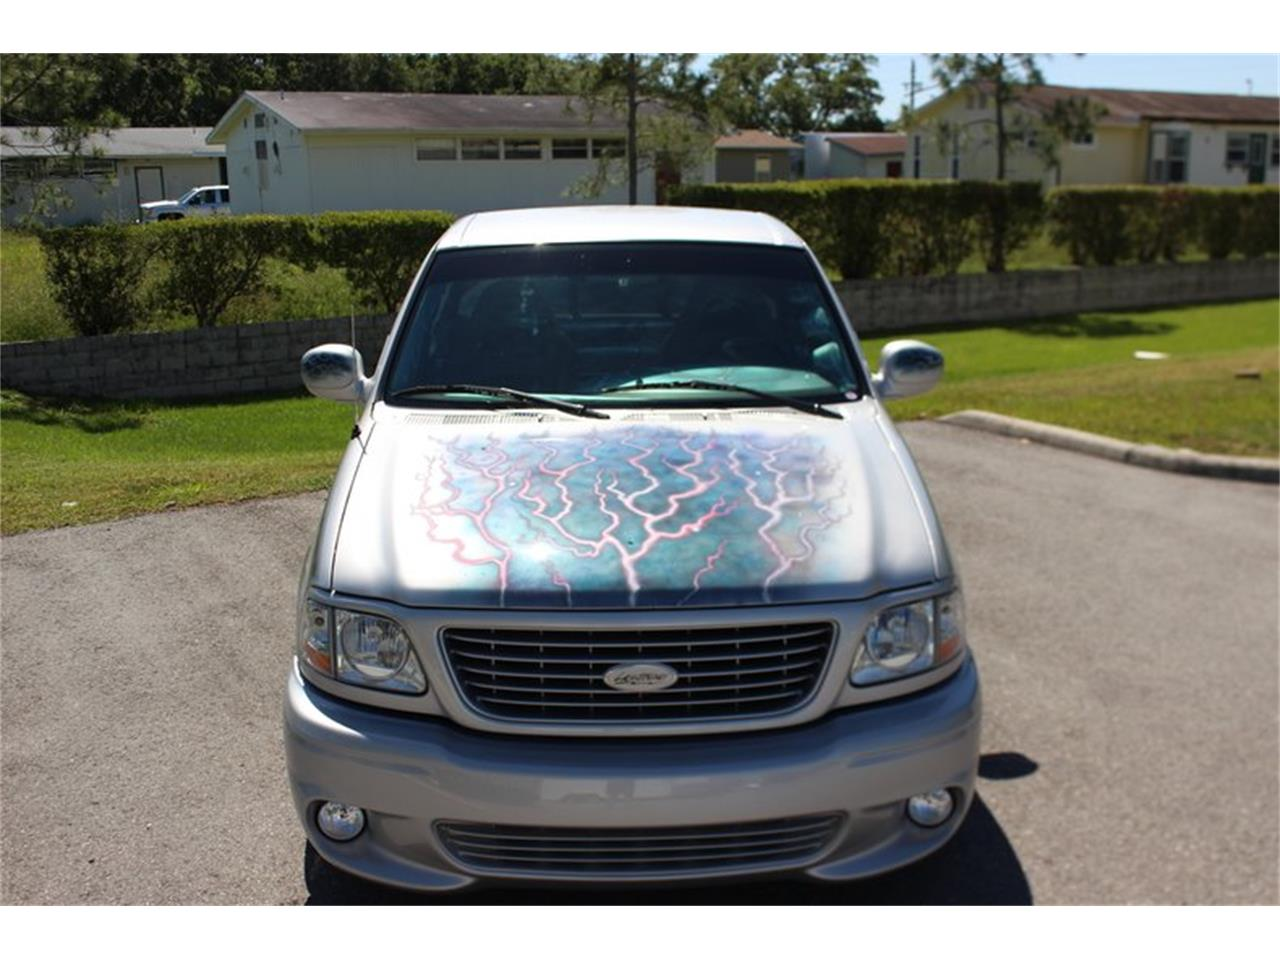 2002 Ford Lightning for sale in Palmetto, FL – photo 41